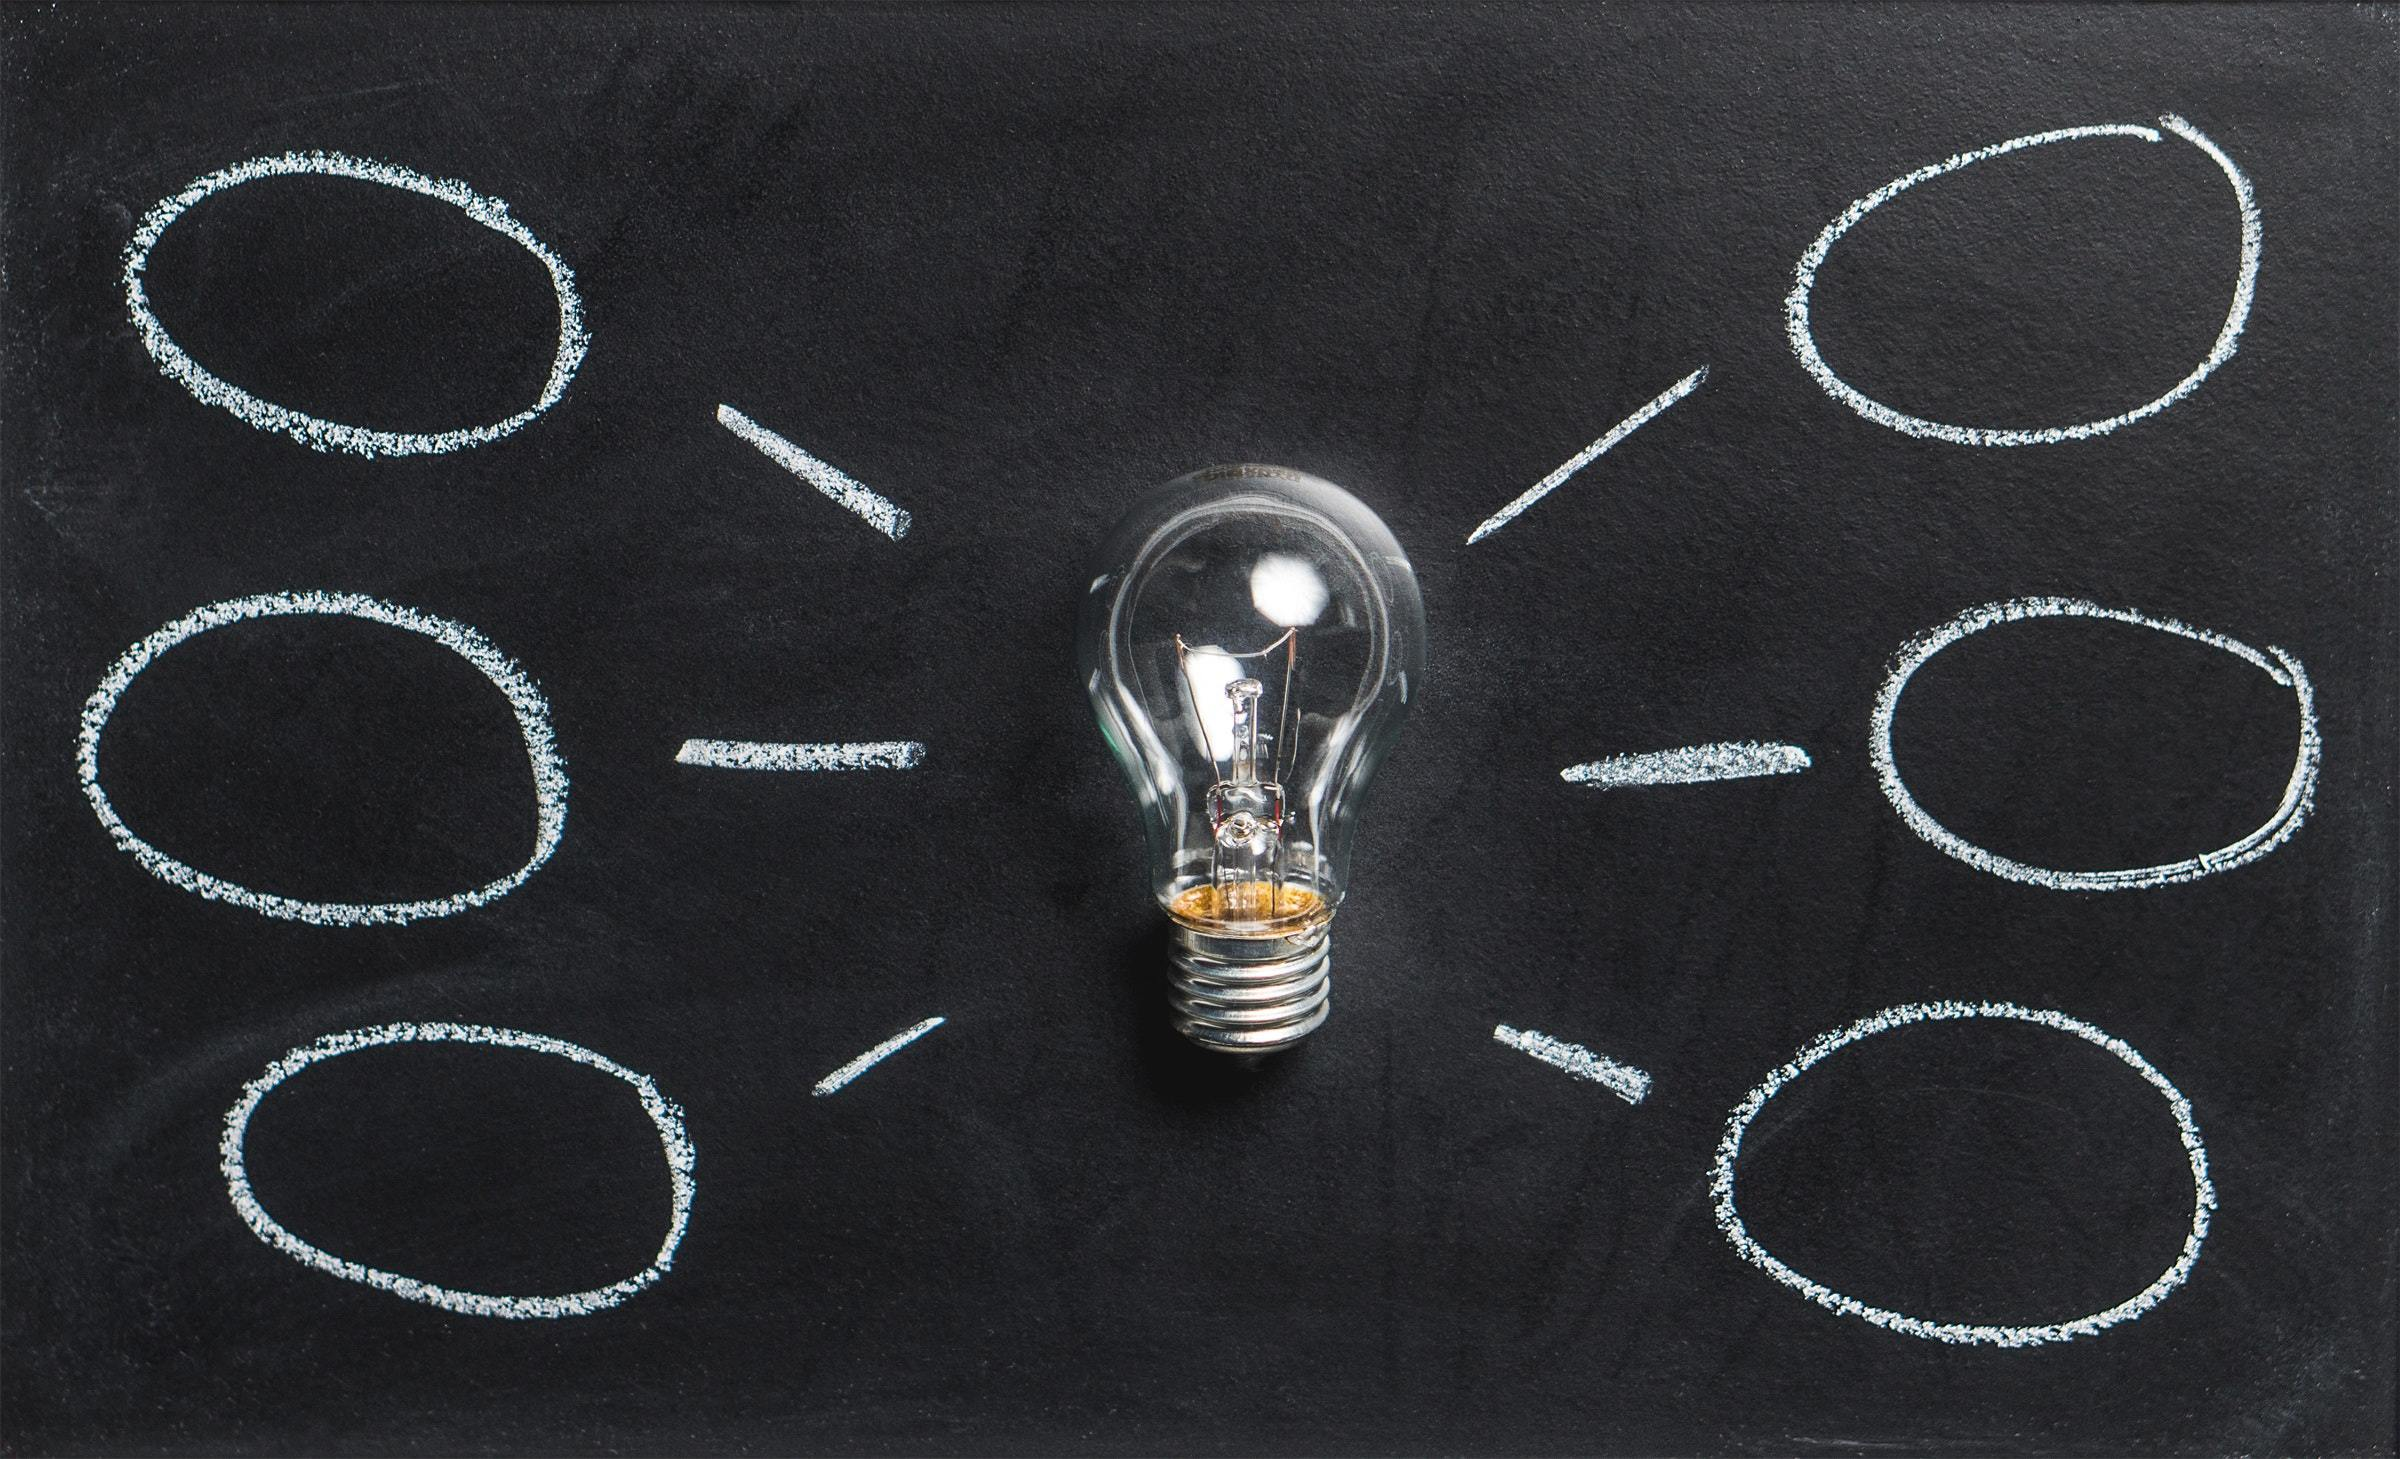 Lightbulb against a blackboard with lines and circles, arranged like a spider diagram, to illustrate the concept of 'ideas'